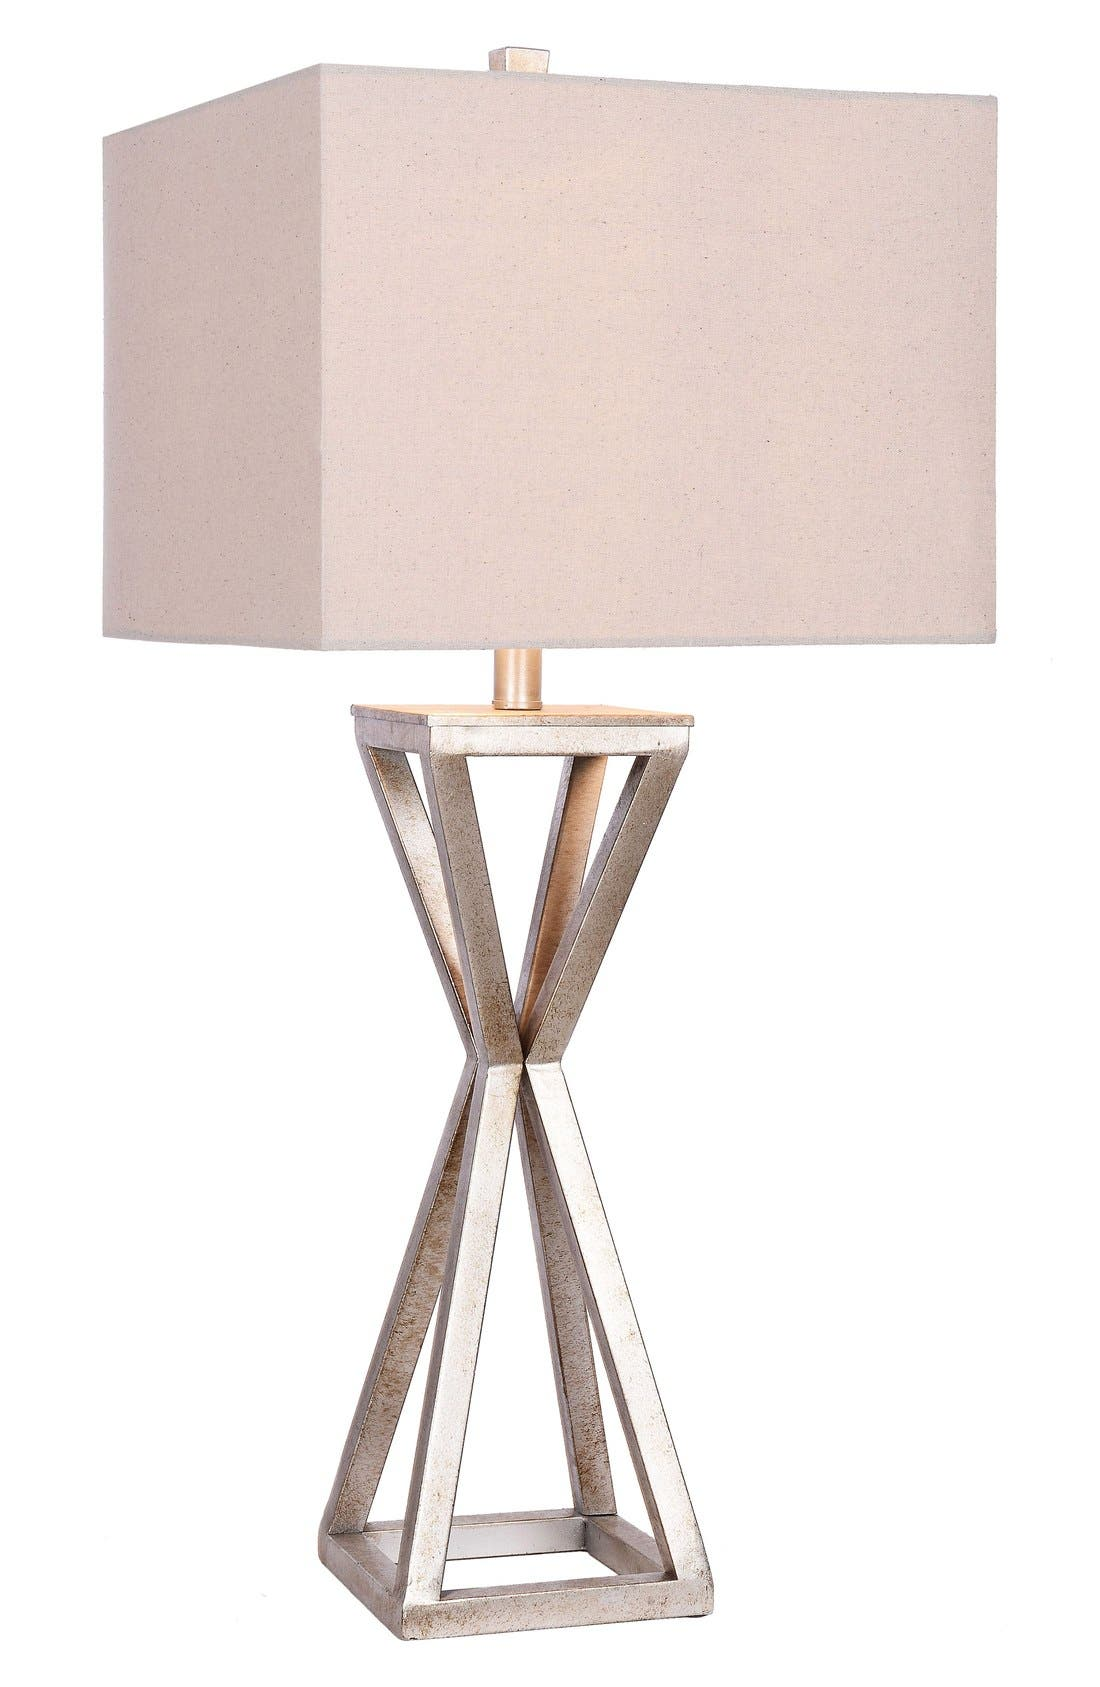 Main Image - JAlexander Carrie Open Caged Metal Table Lamp